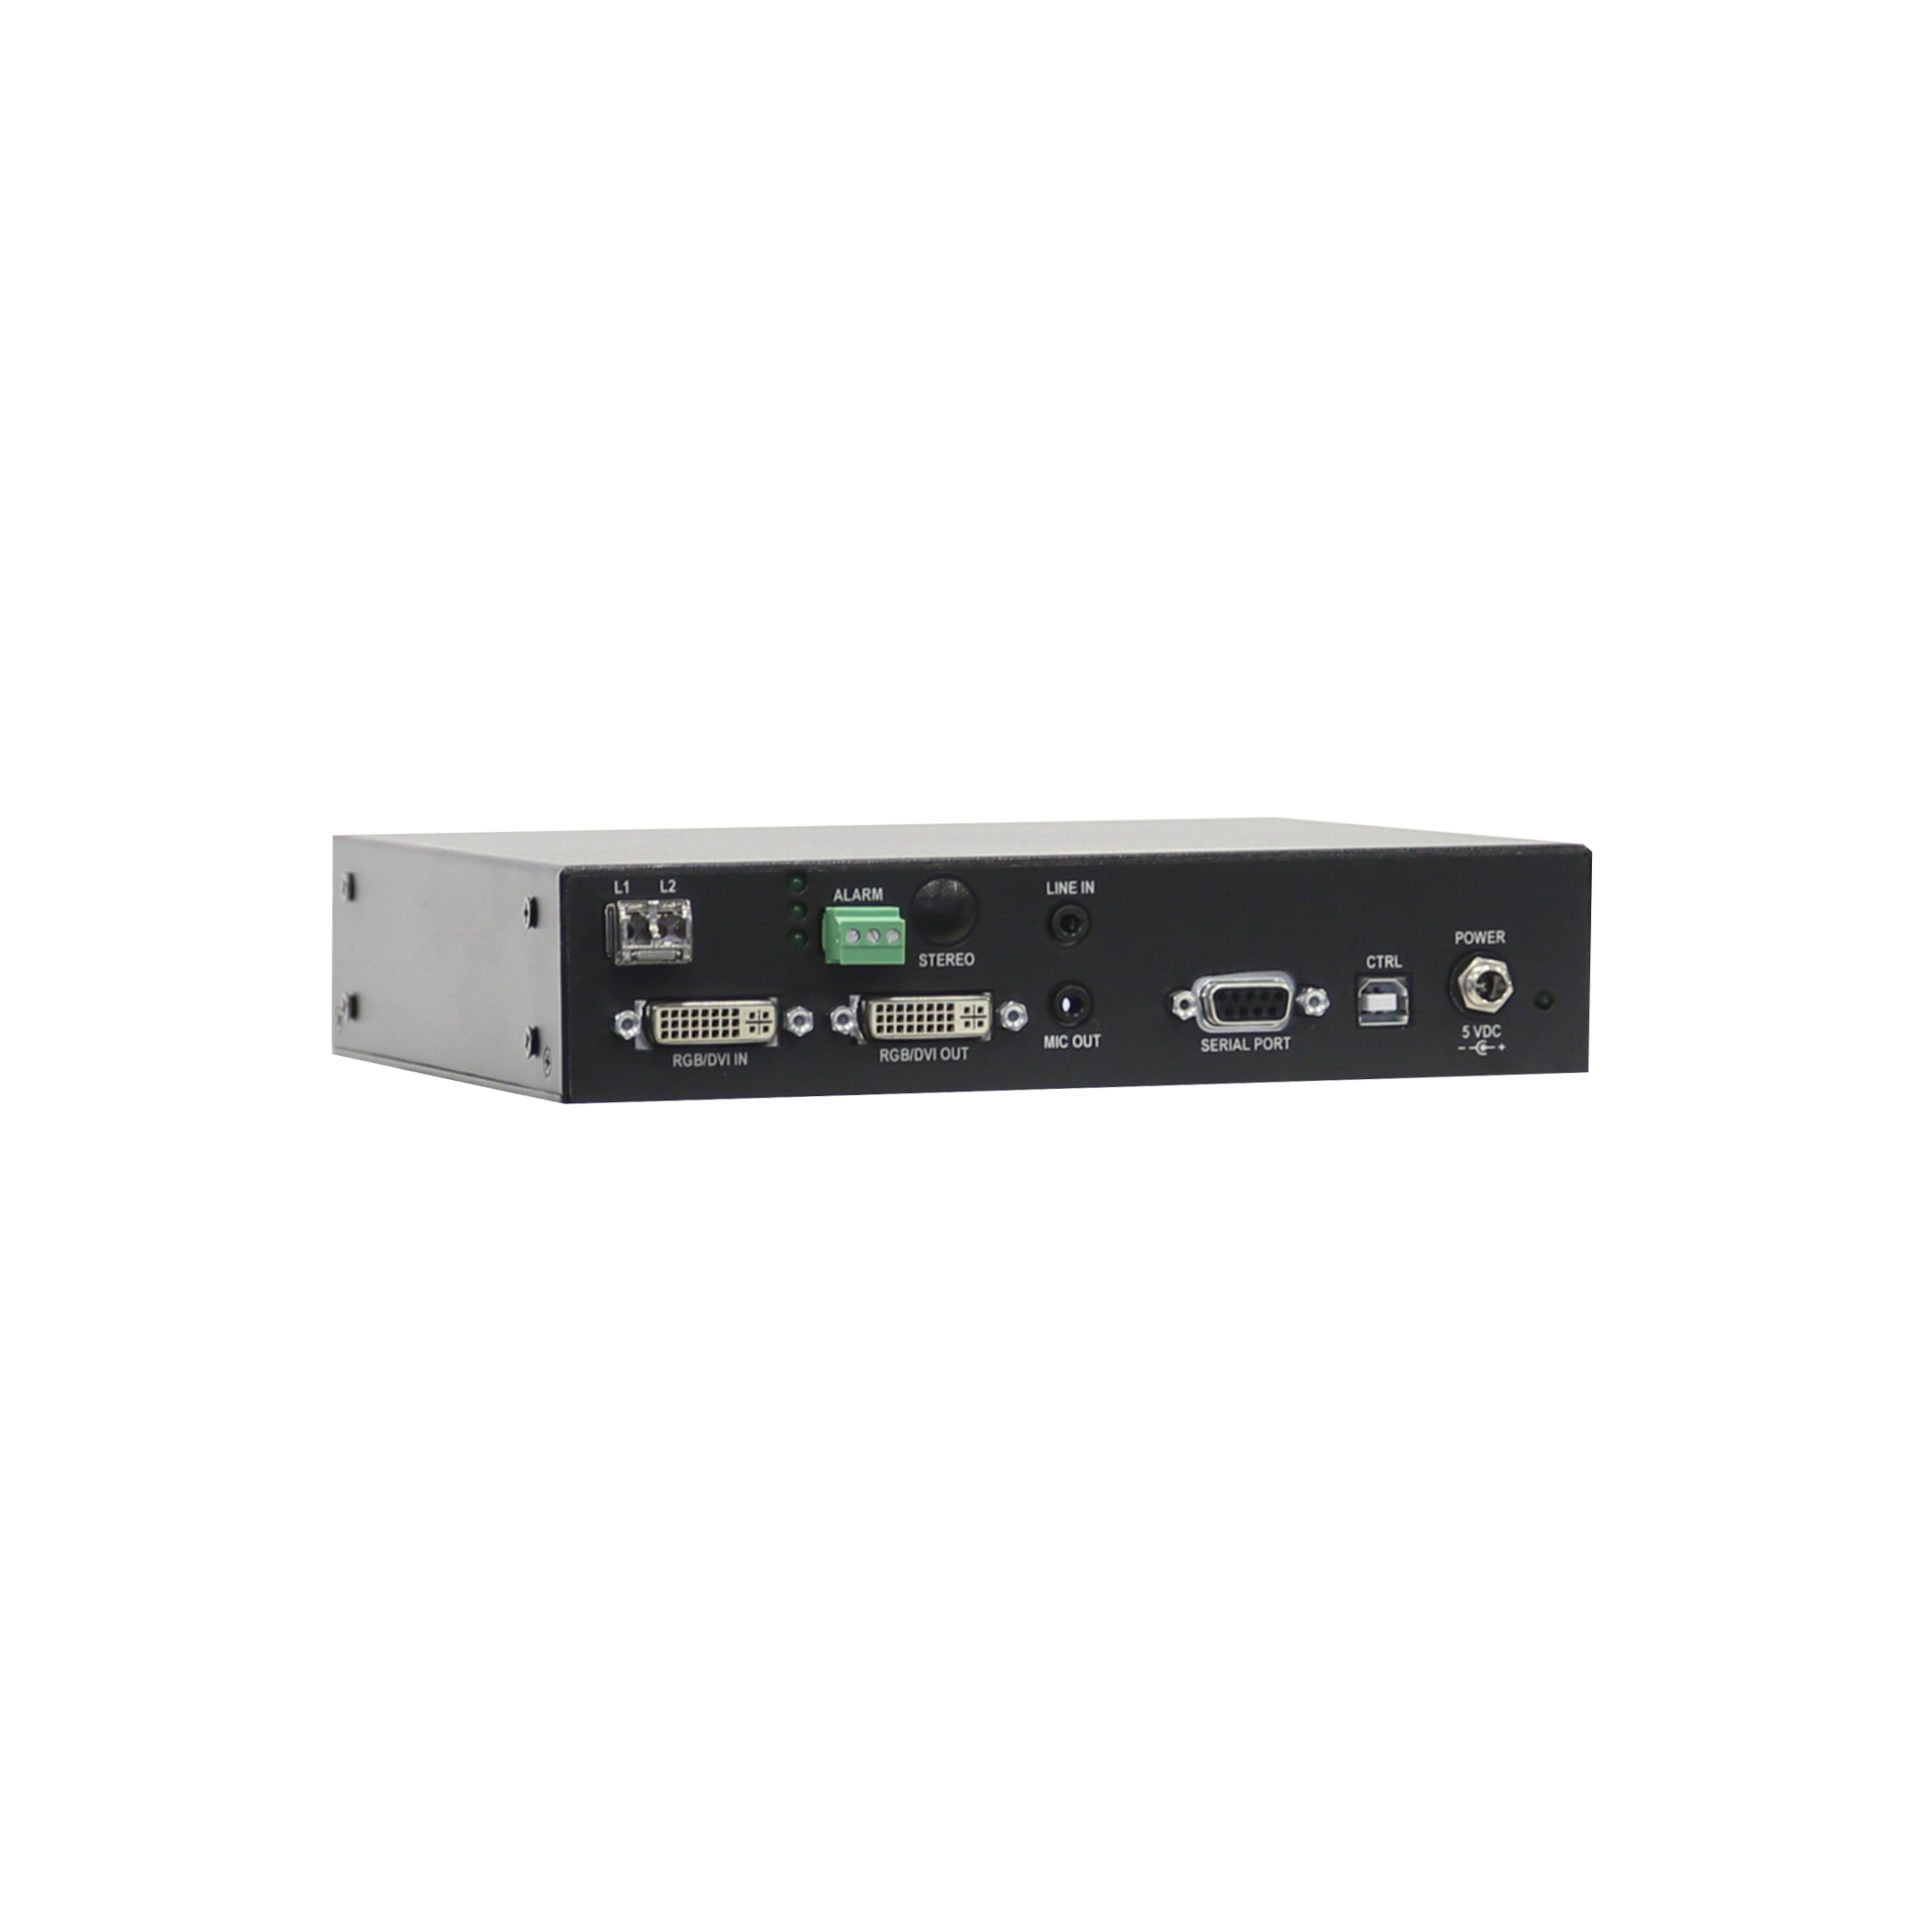 Velocity 10 RGB DVI Video Extender